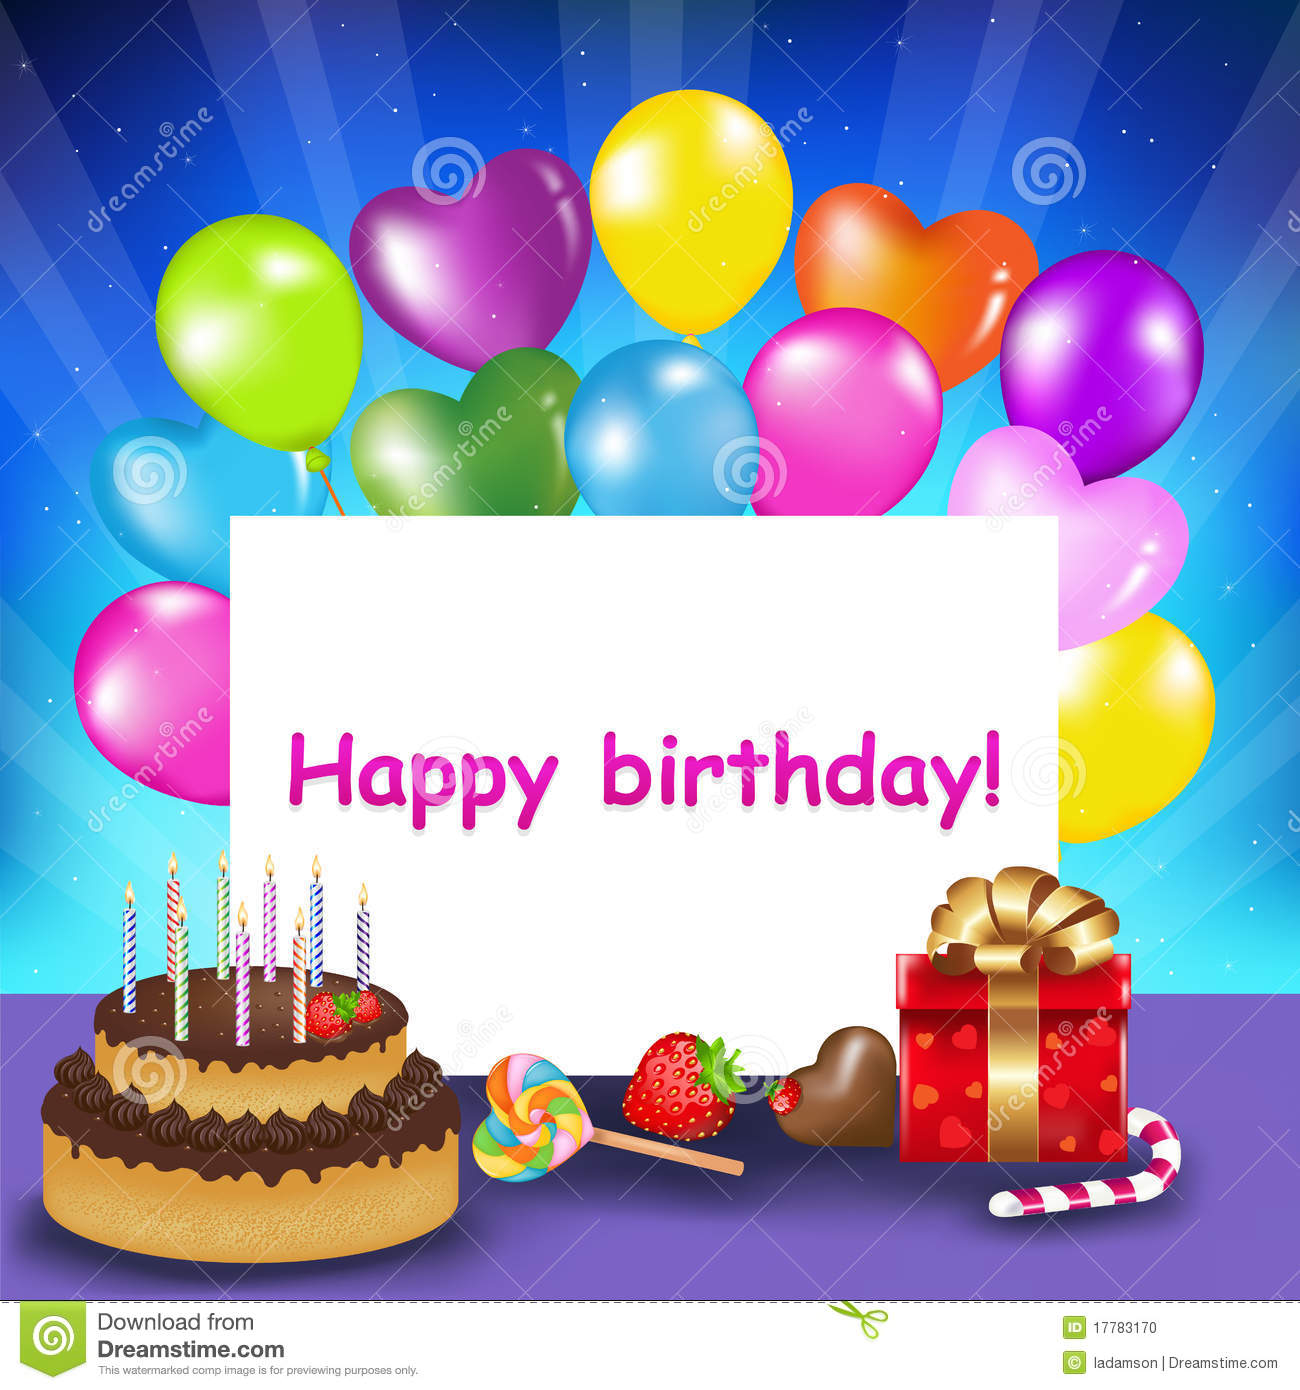 happy birthday card images for her ; happy-birthday-card-vector-17783170